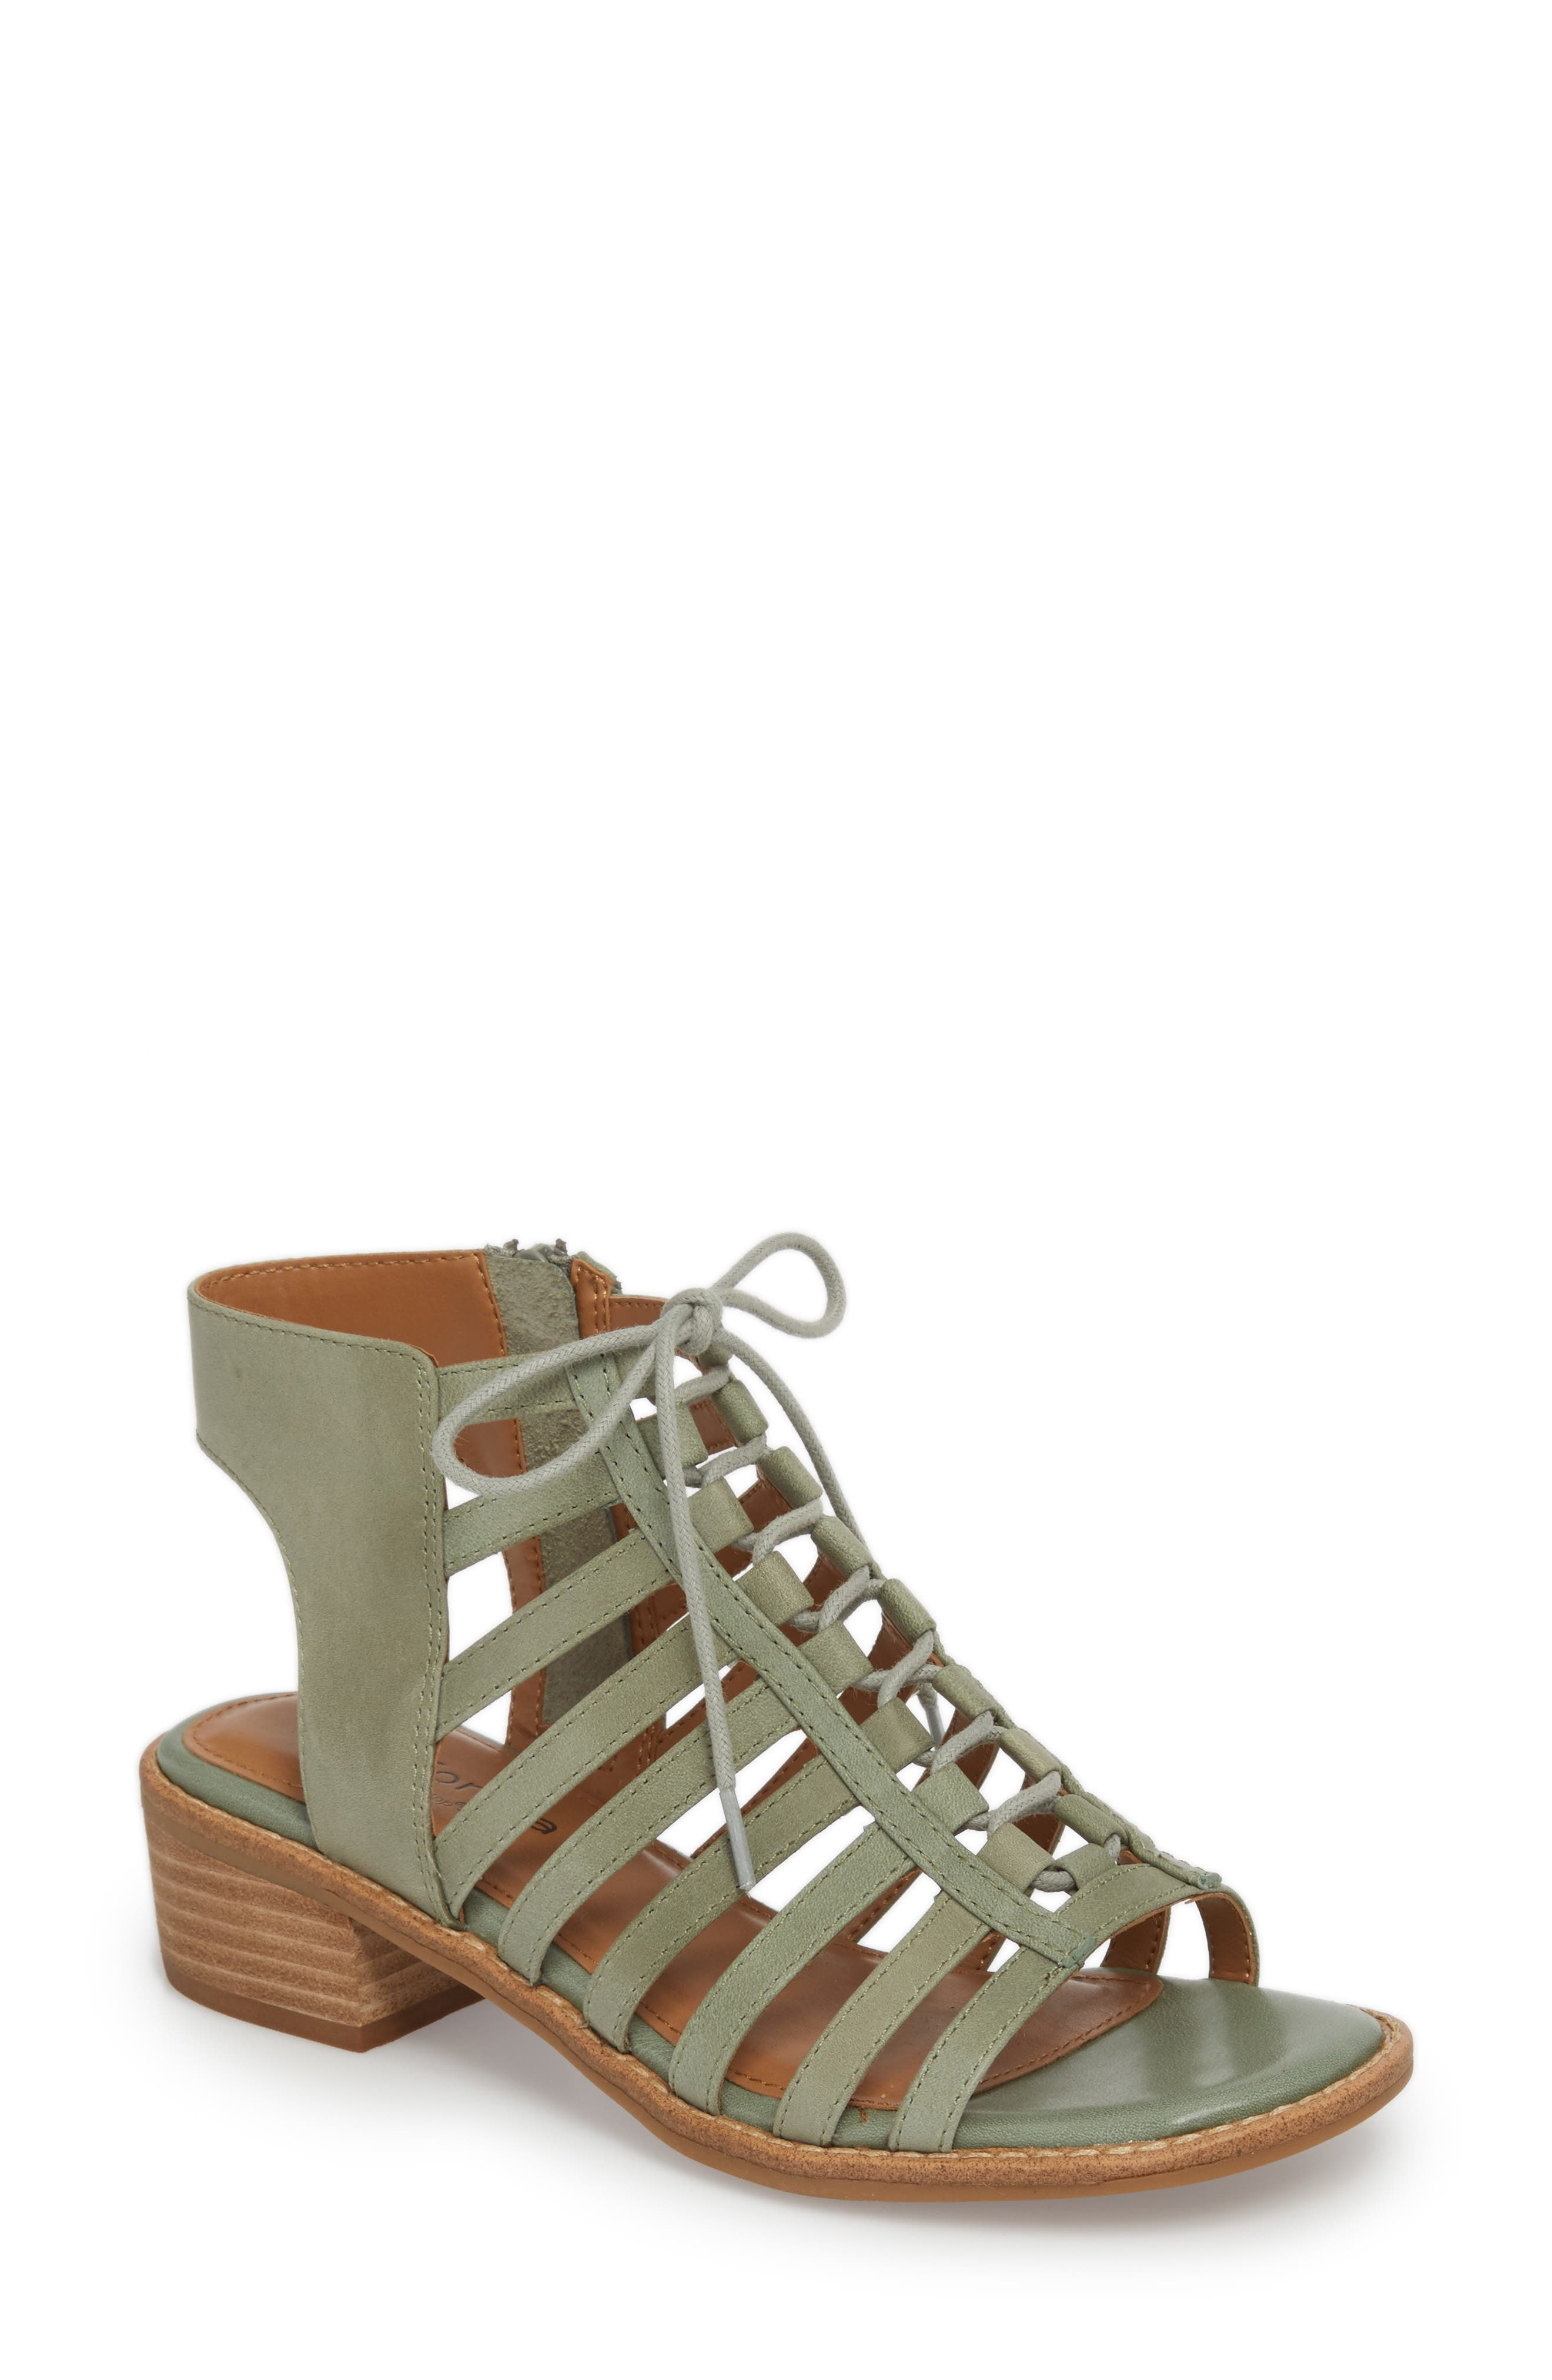 COMFORTIVA Blossom Sandal, Main, color, SAGE LEATHER